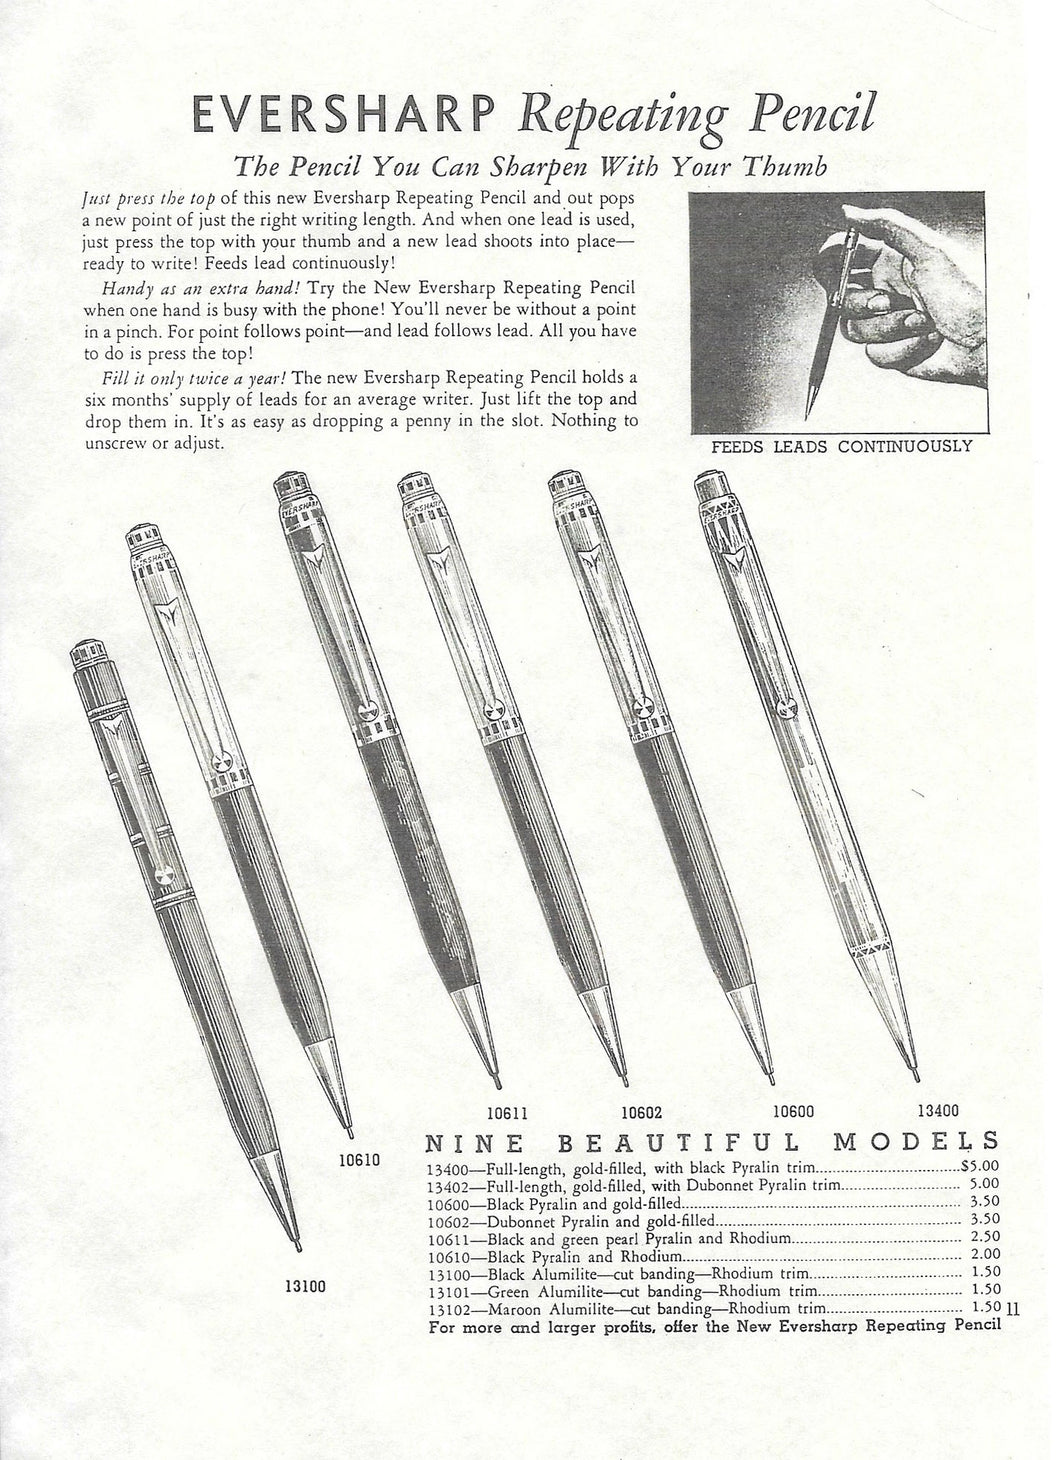 Eversharp, Repeating Pencil